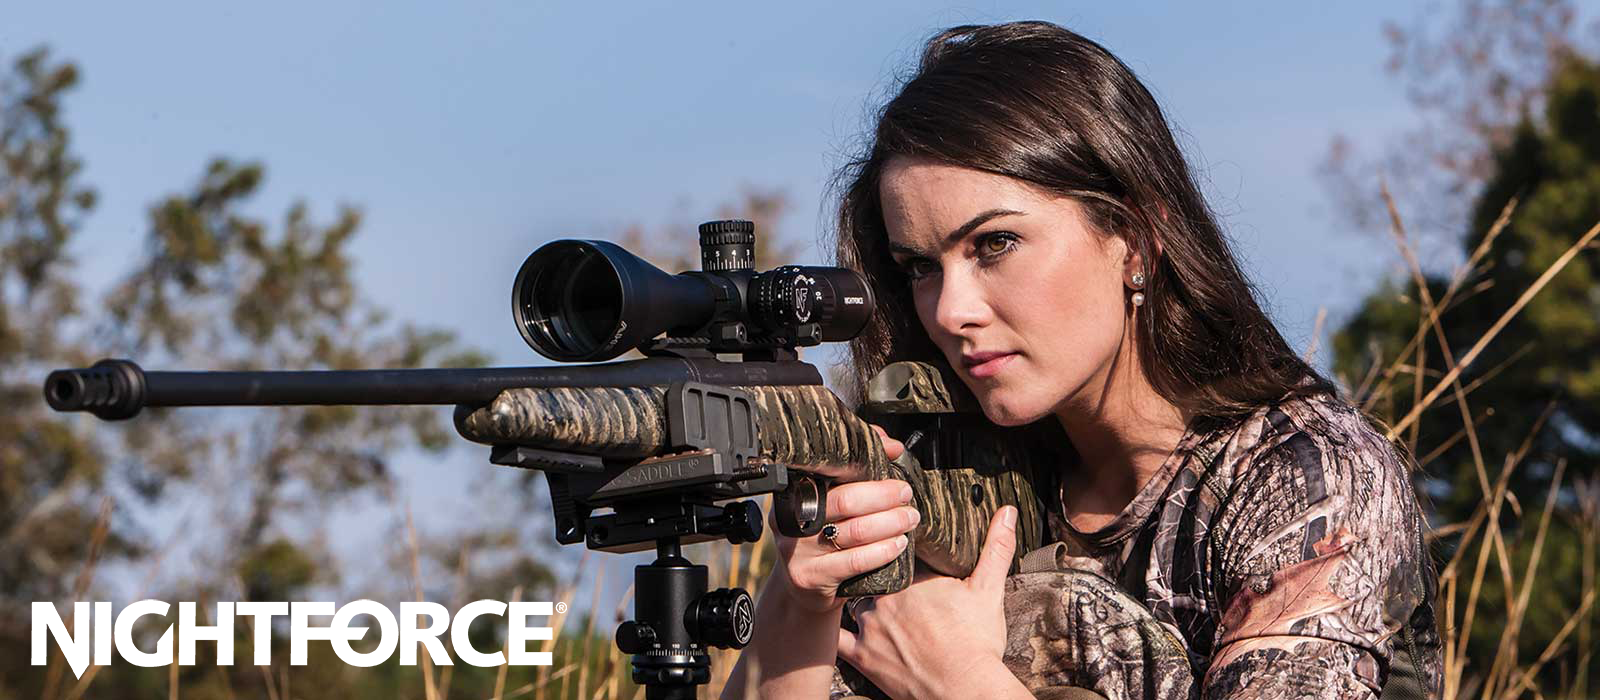 Woman using Nightforce riflescope